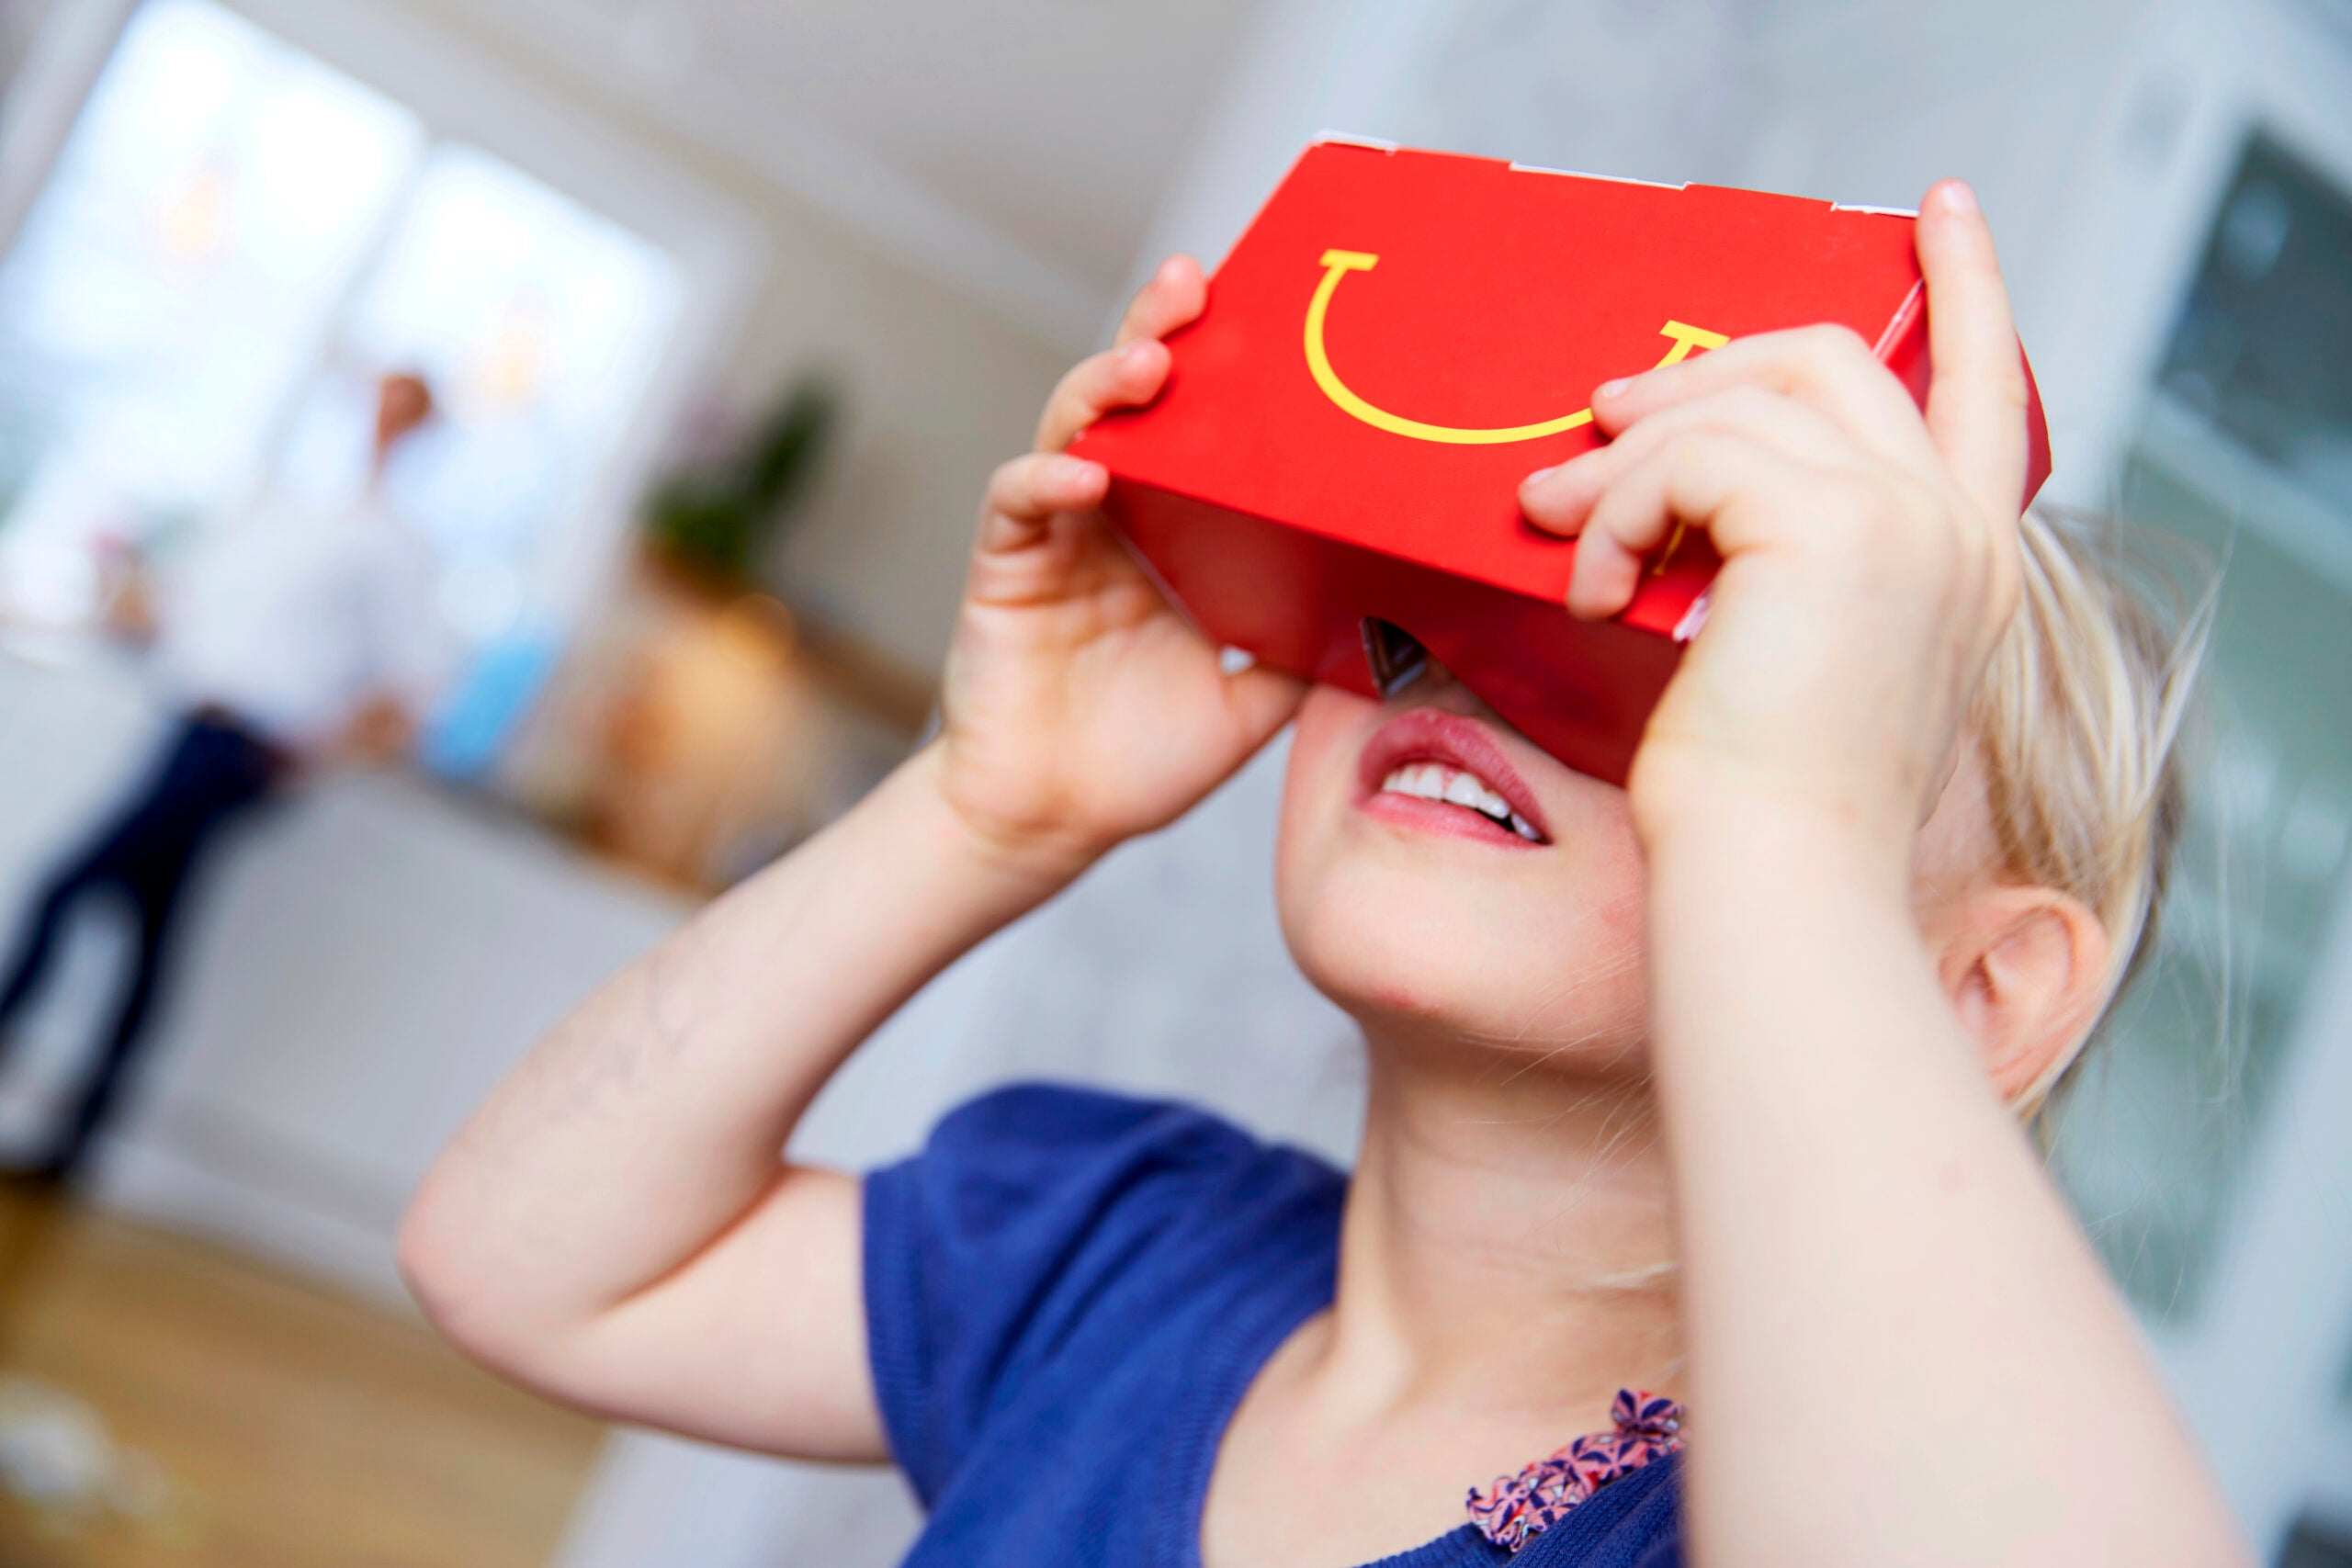 McDonalds 'Happy Goggles' VR Happy Meal box promo image